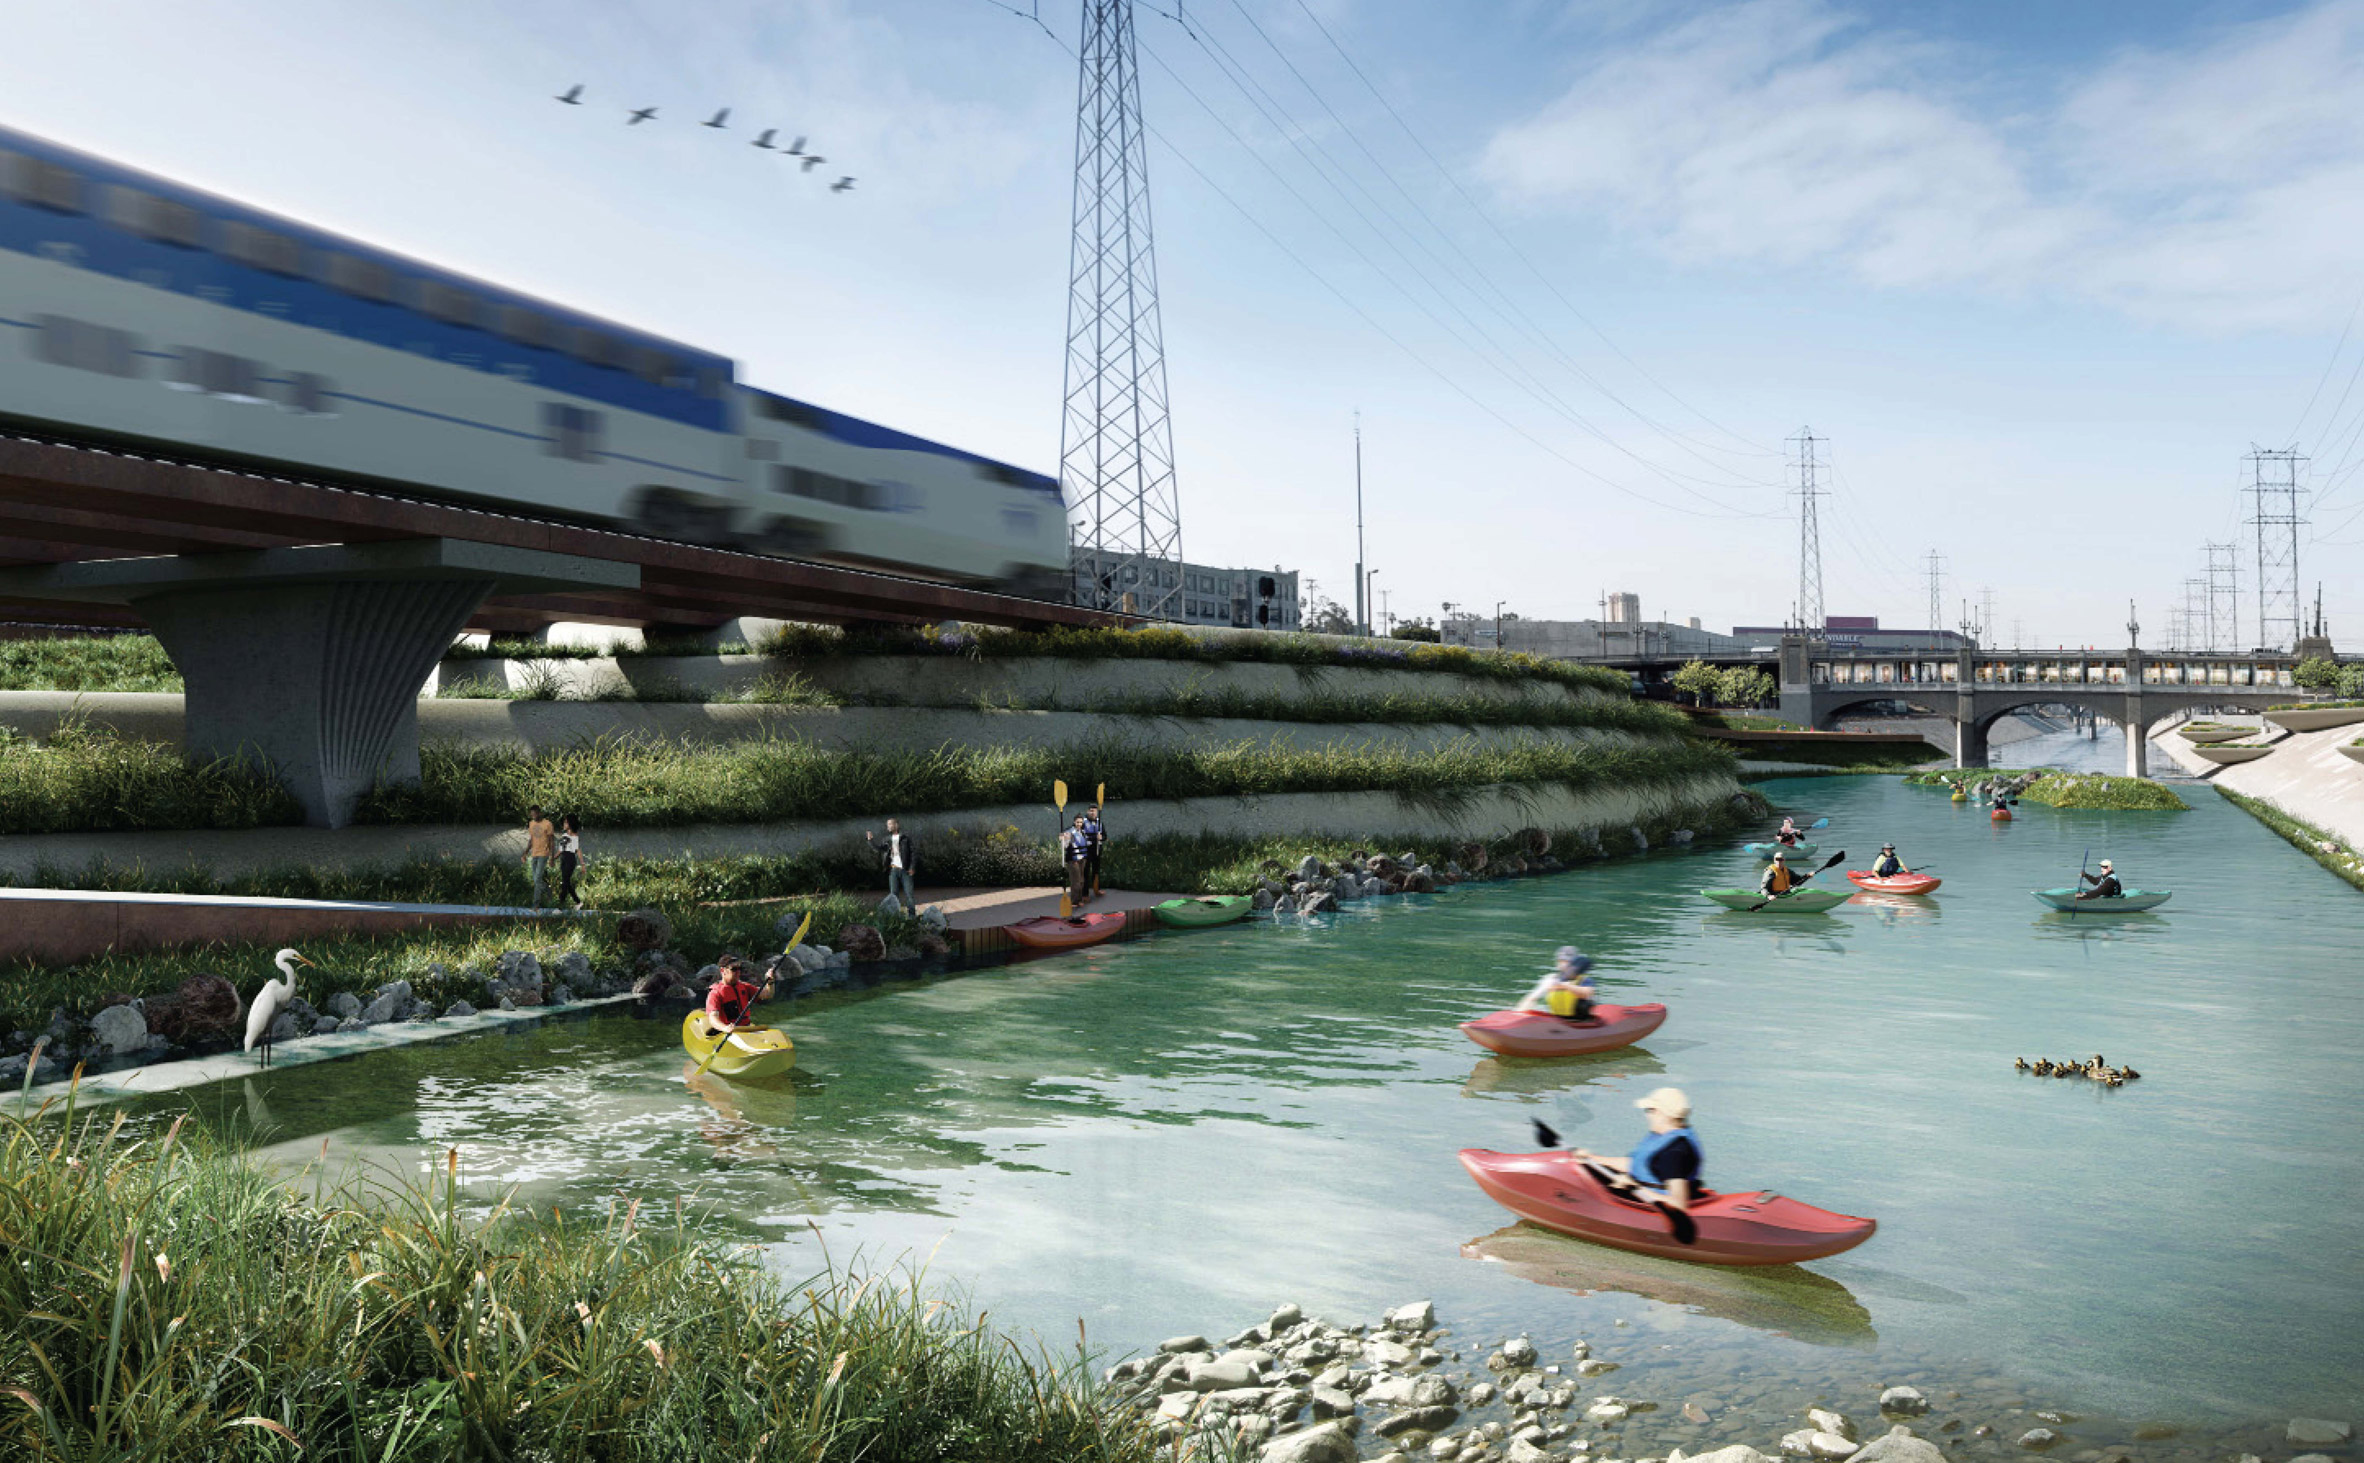 Los Angeles River could be revitalised with designs from seven architecture firms